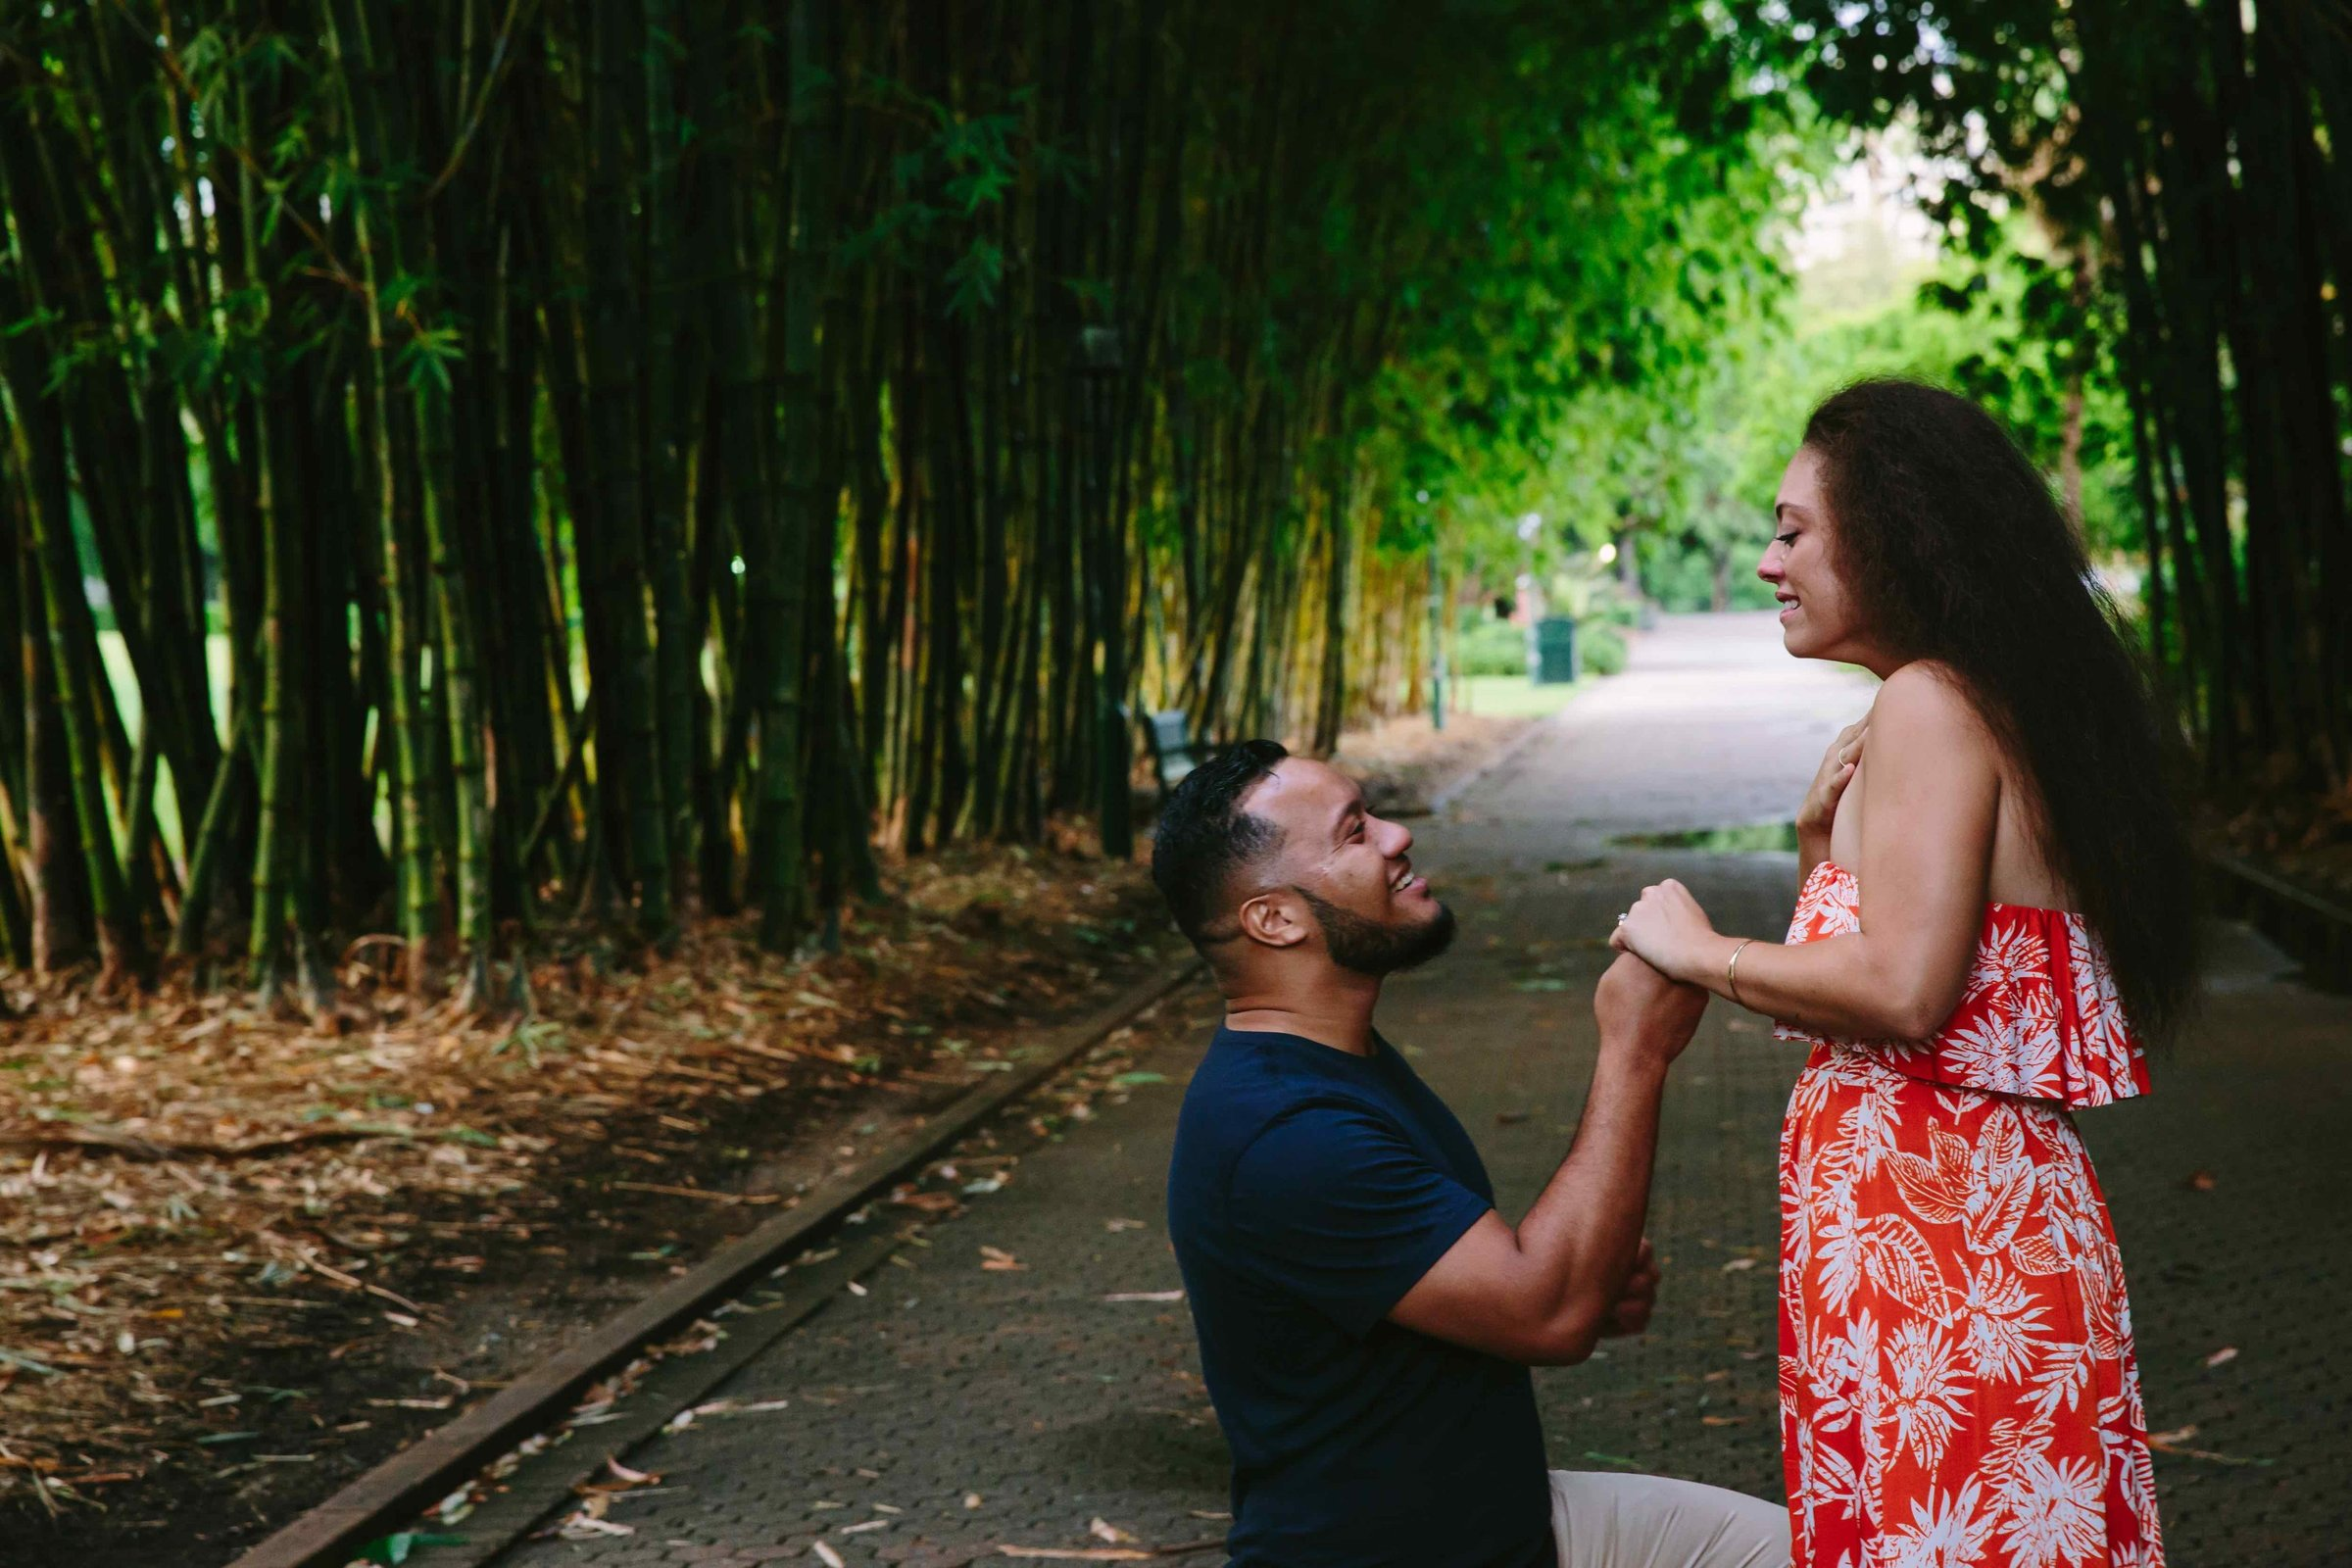 Eagle Street Proposal Photographer Anna Osetroff